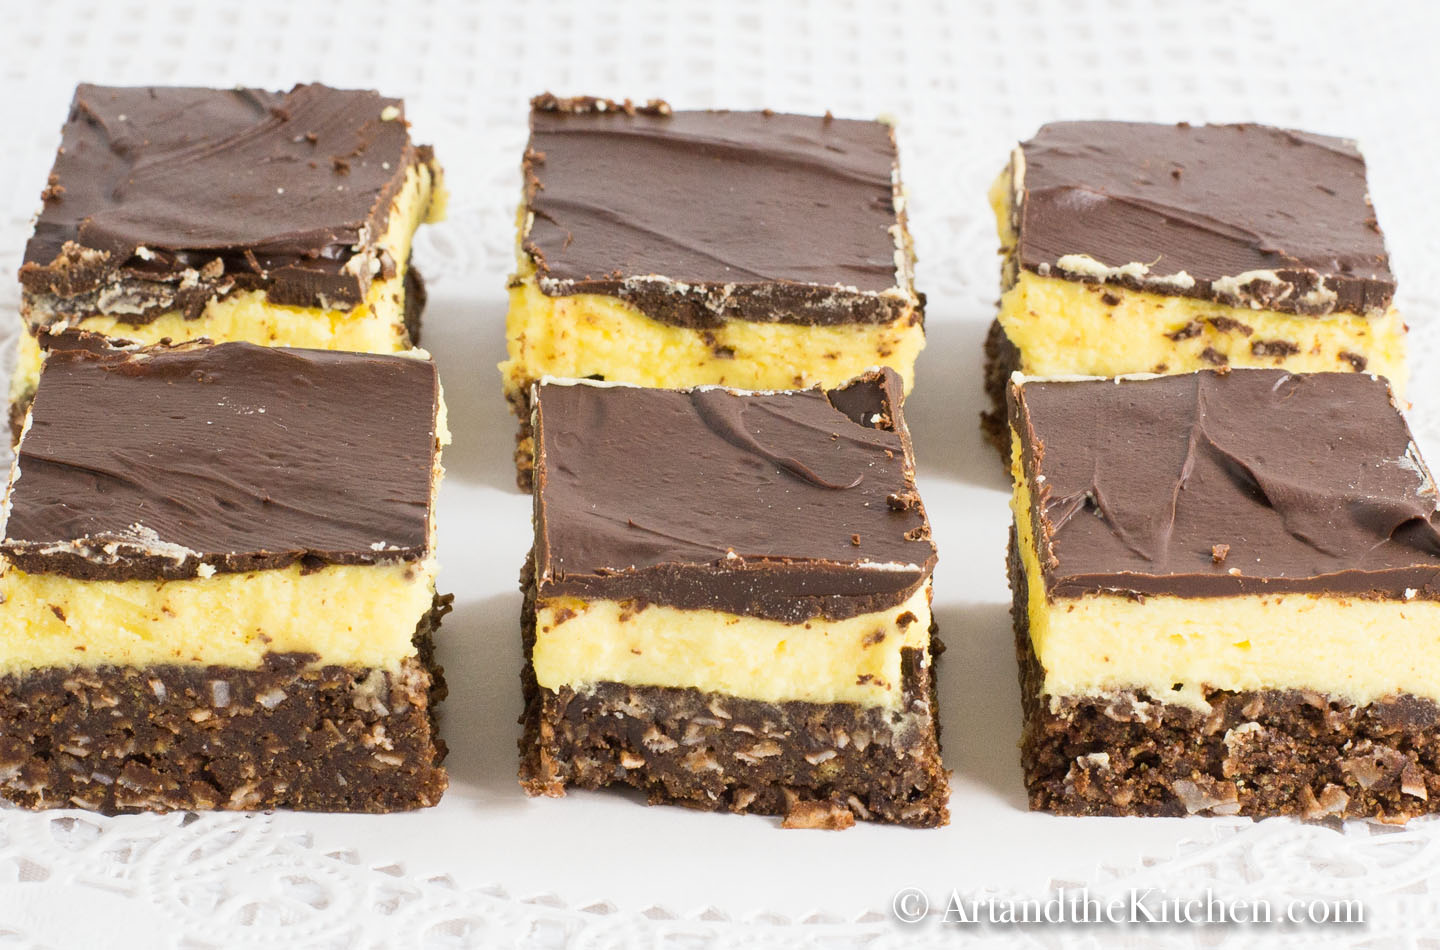 Rows of cut up squares that have layers of chocolate, yellow custard and chocolate coconut